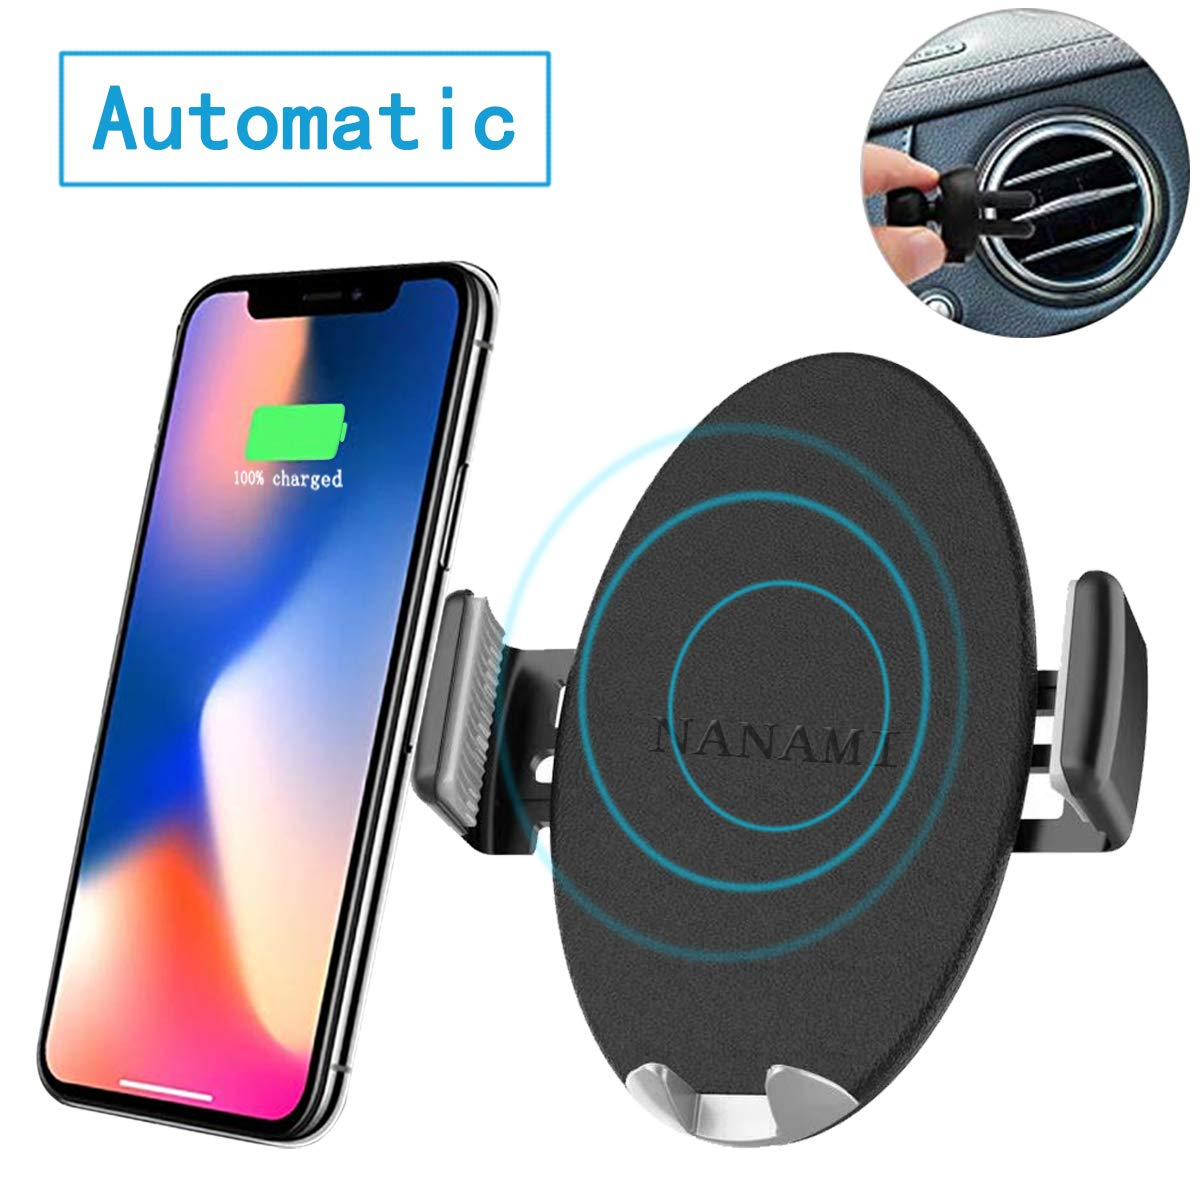 Qi Car Charger Mount Samsung Galaxy S9 Plus//S8//S8 Plus//Note 9//8 NANAMI 4350470907 Automatic Wireless Car Charger one-Touch Qi Fast Wireless Charging Air Vent Car Phone Holder for iPhone Xs Max//XR//XS//X//8 Plus